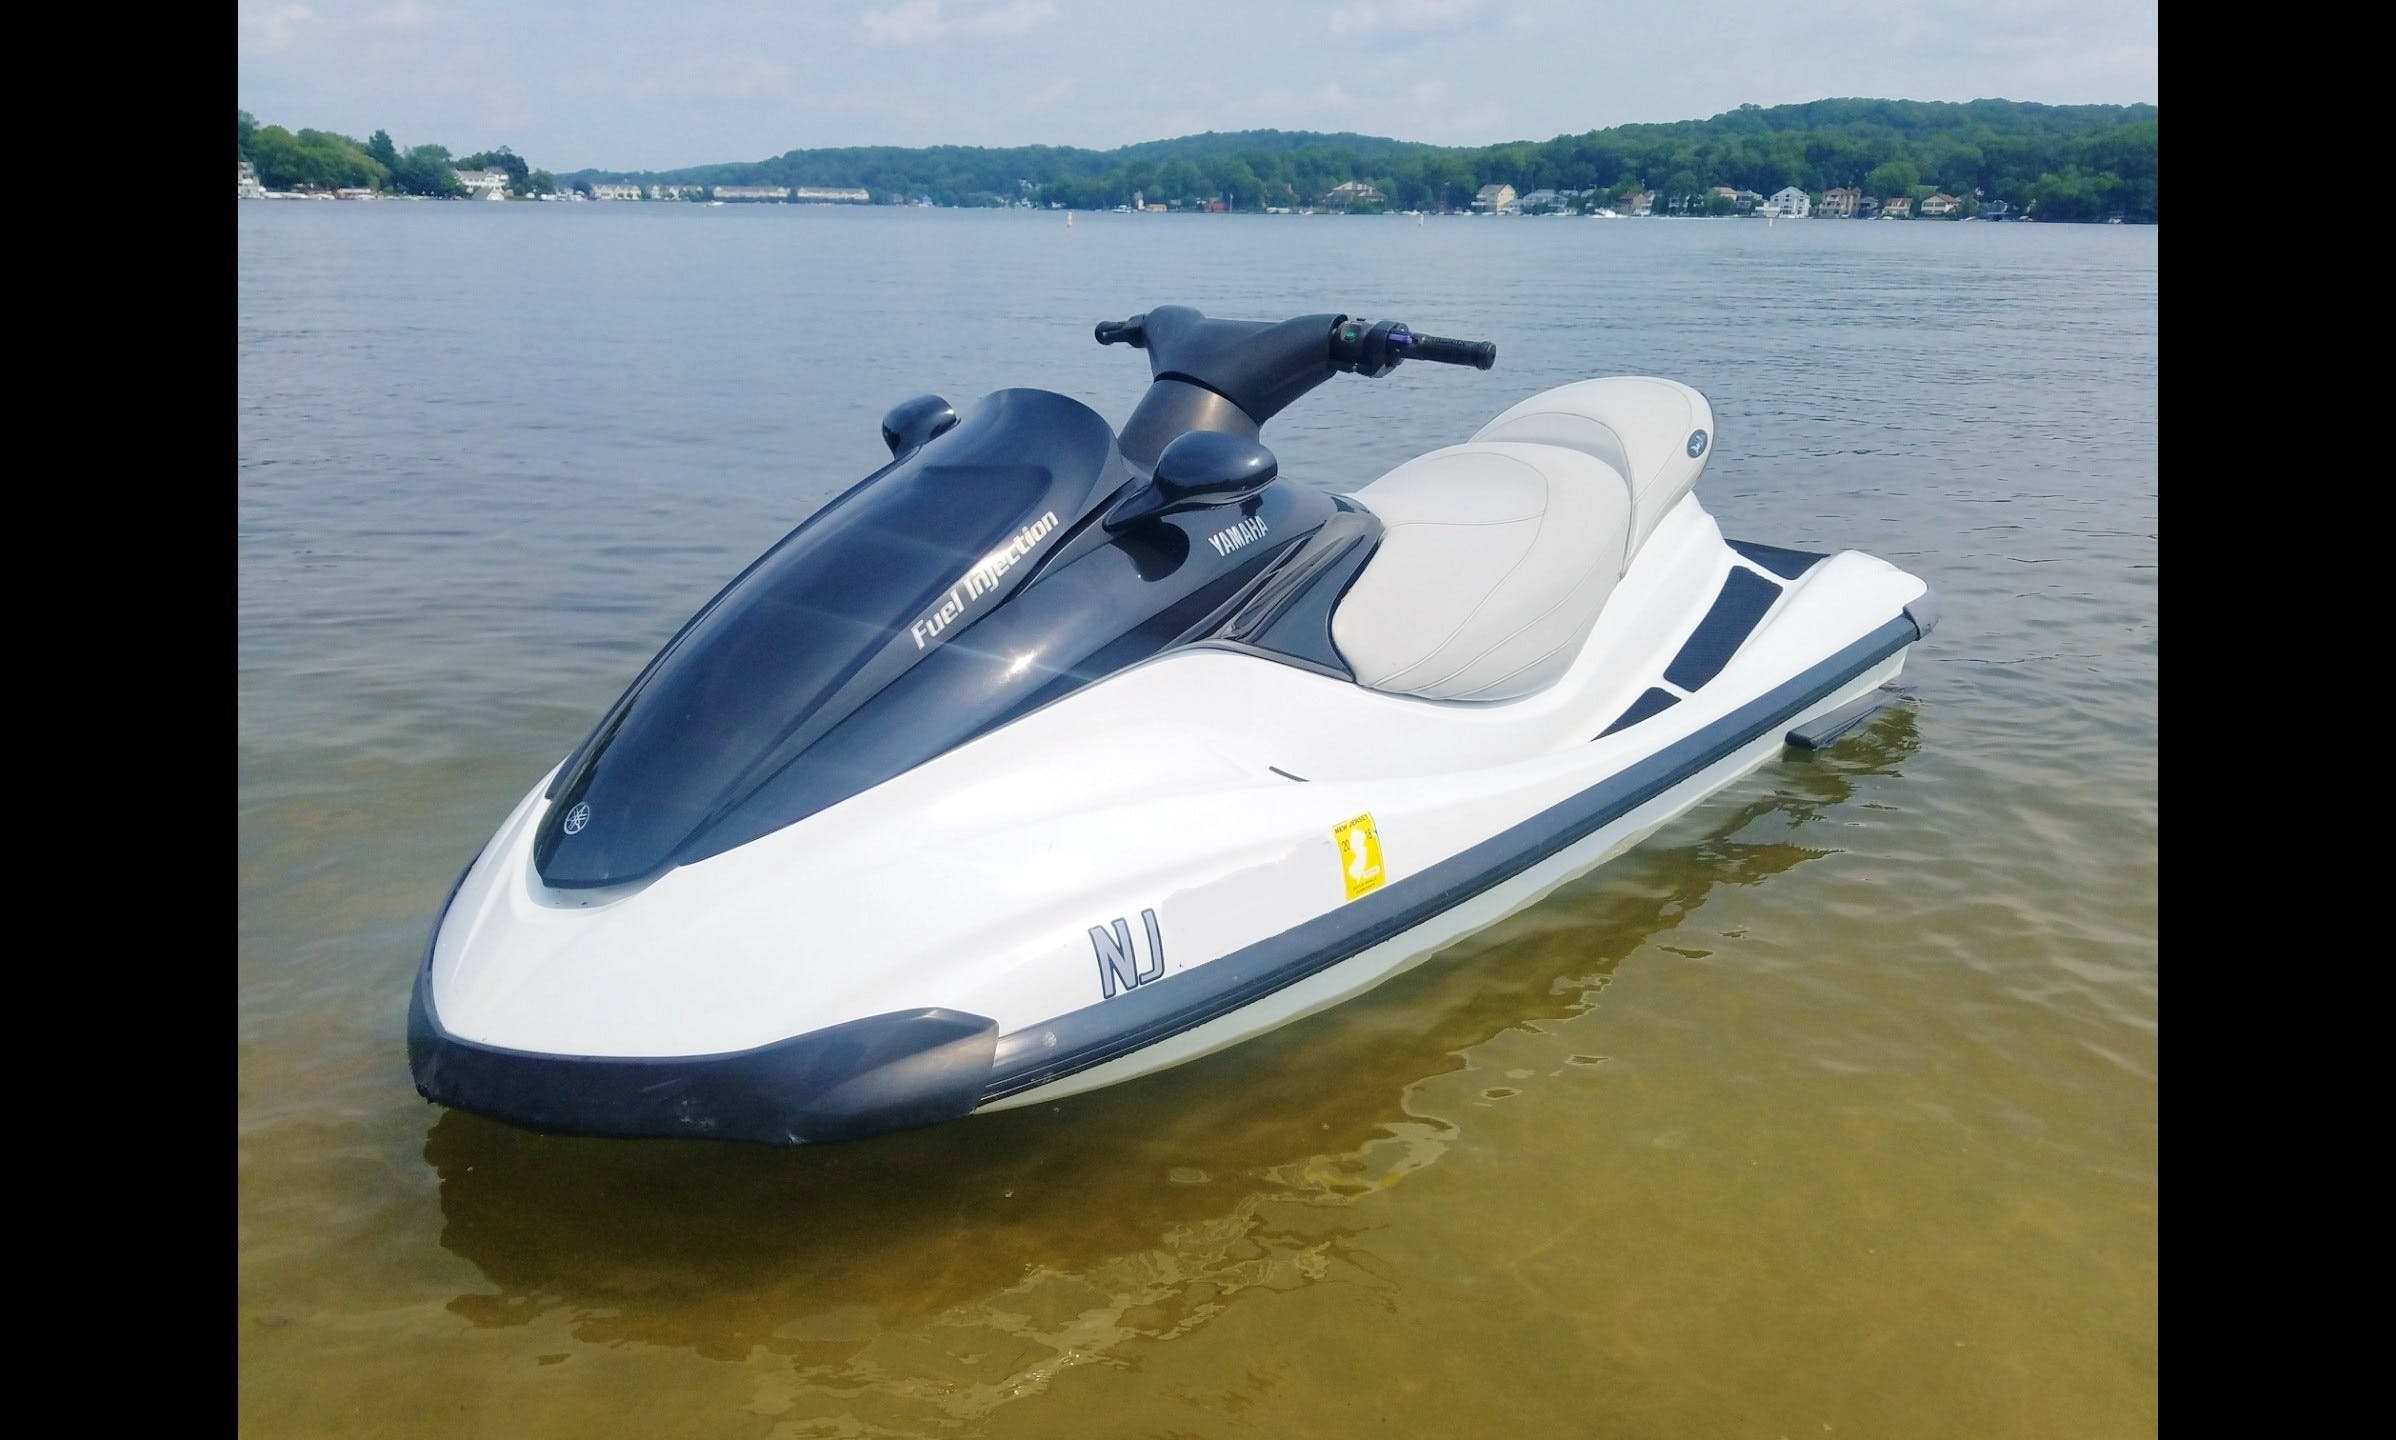 Jet Ski rental at Lake Hopatcong